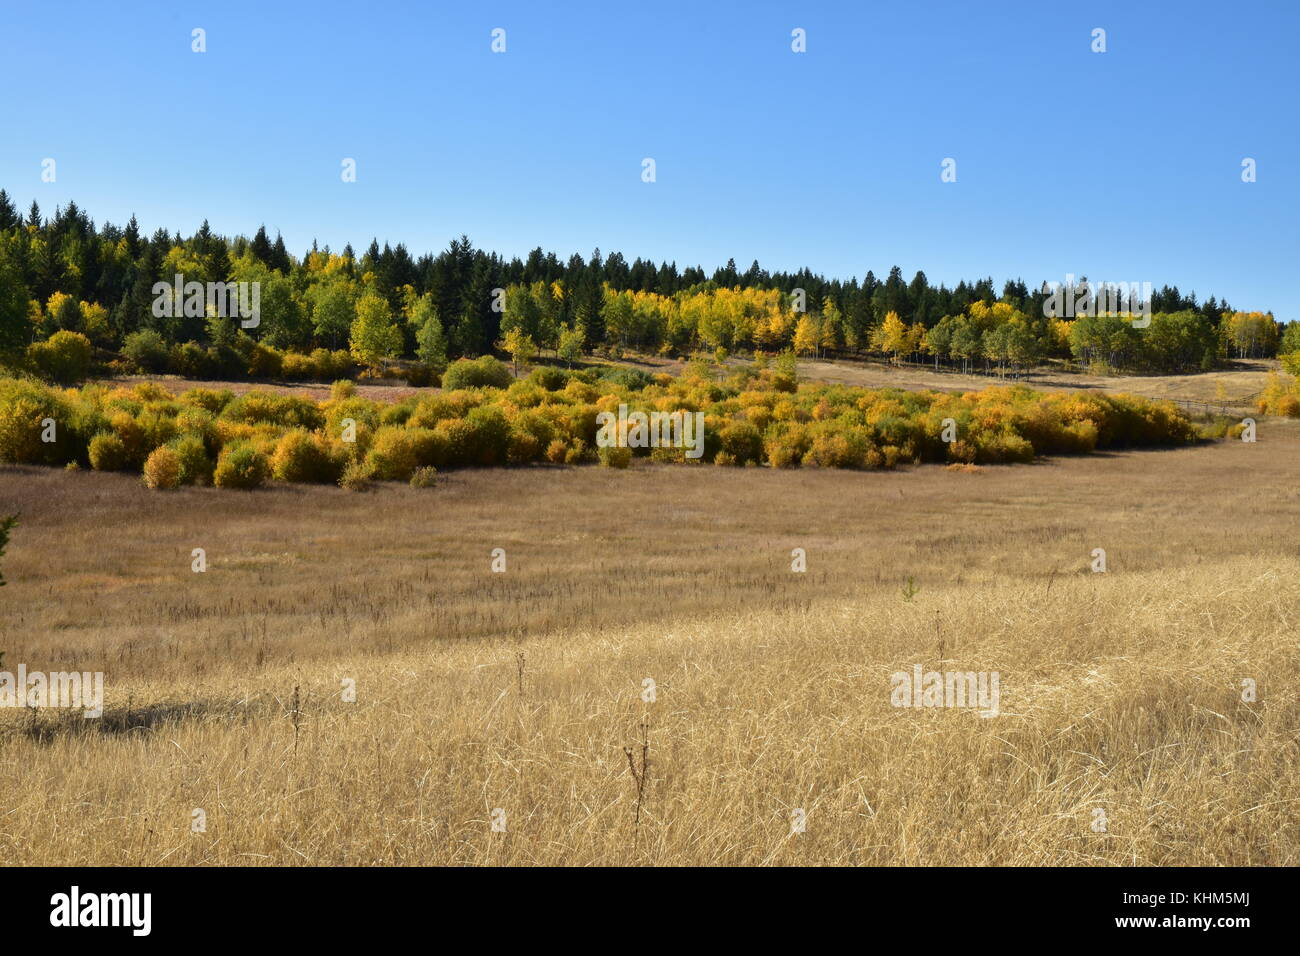 Pastureland in the fall - Stock Image